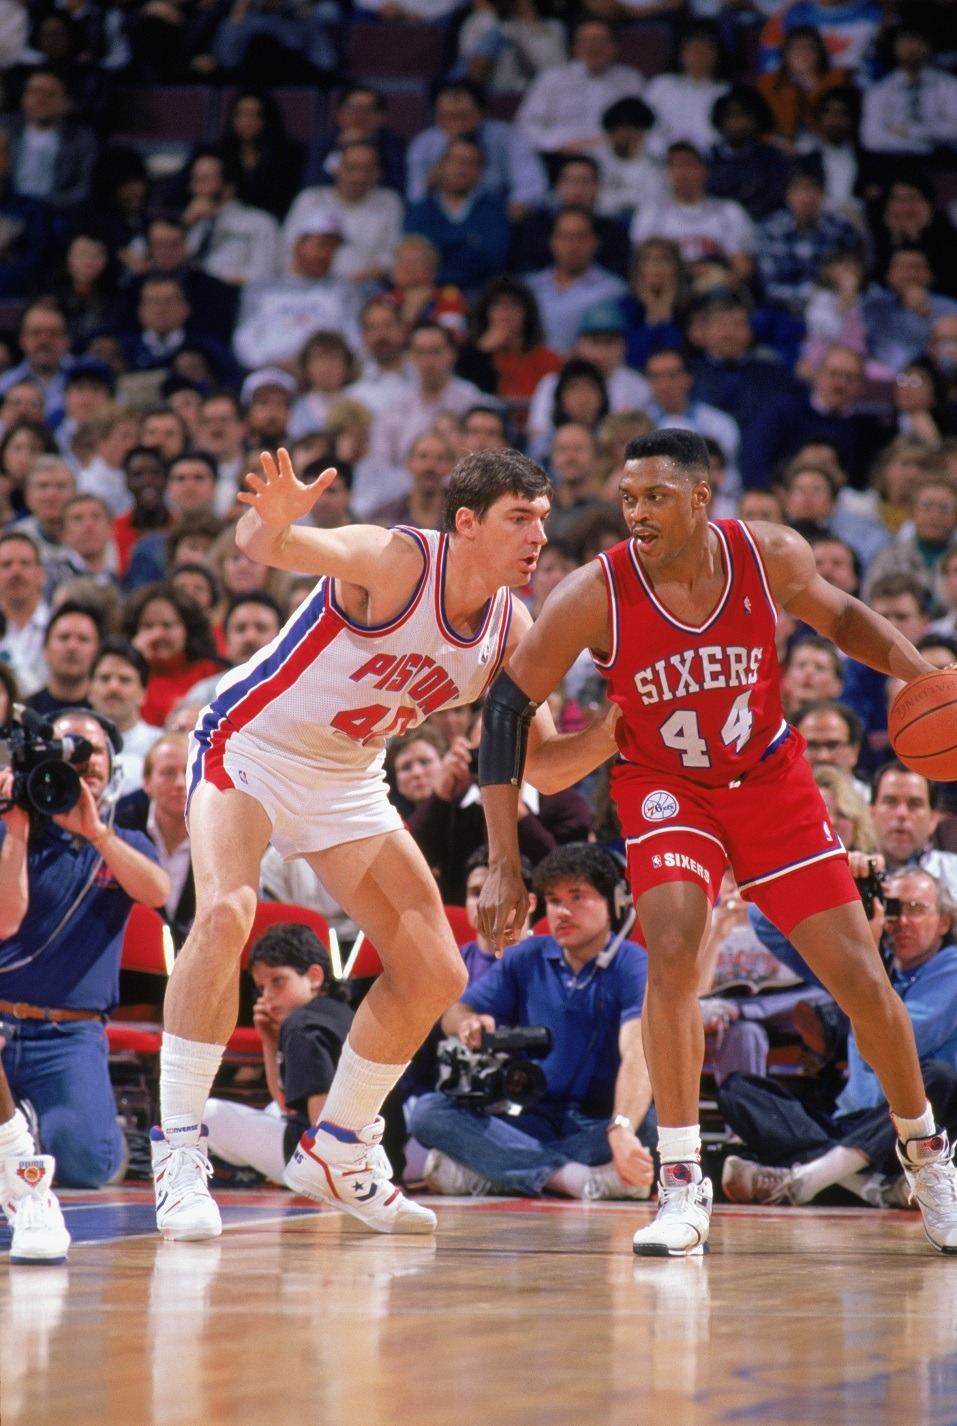 Rick Mahorn of the Philadelphia 76ers is defended by Bill Laimbeer of the Detroit Pistons